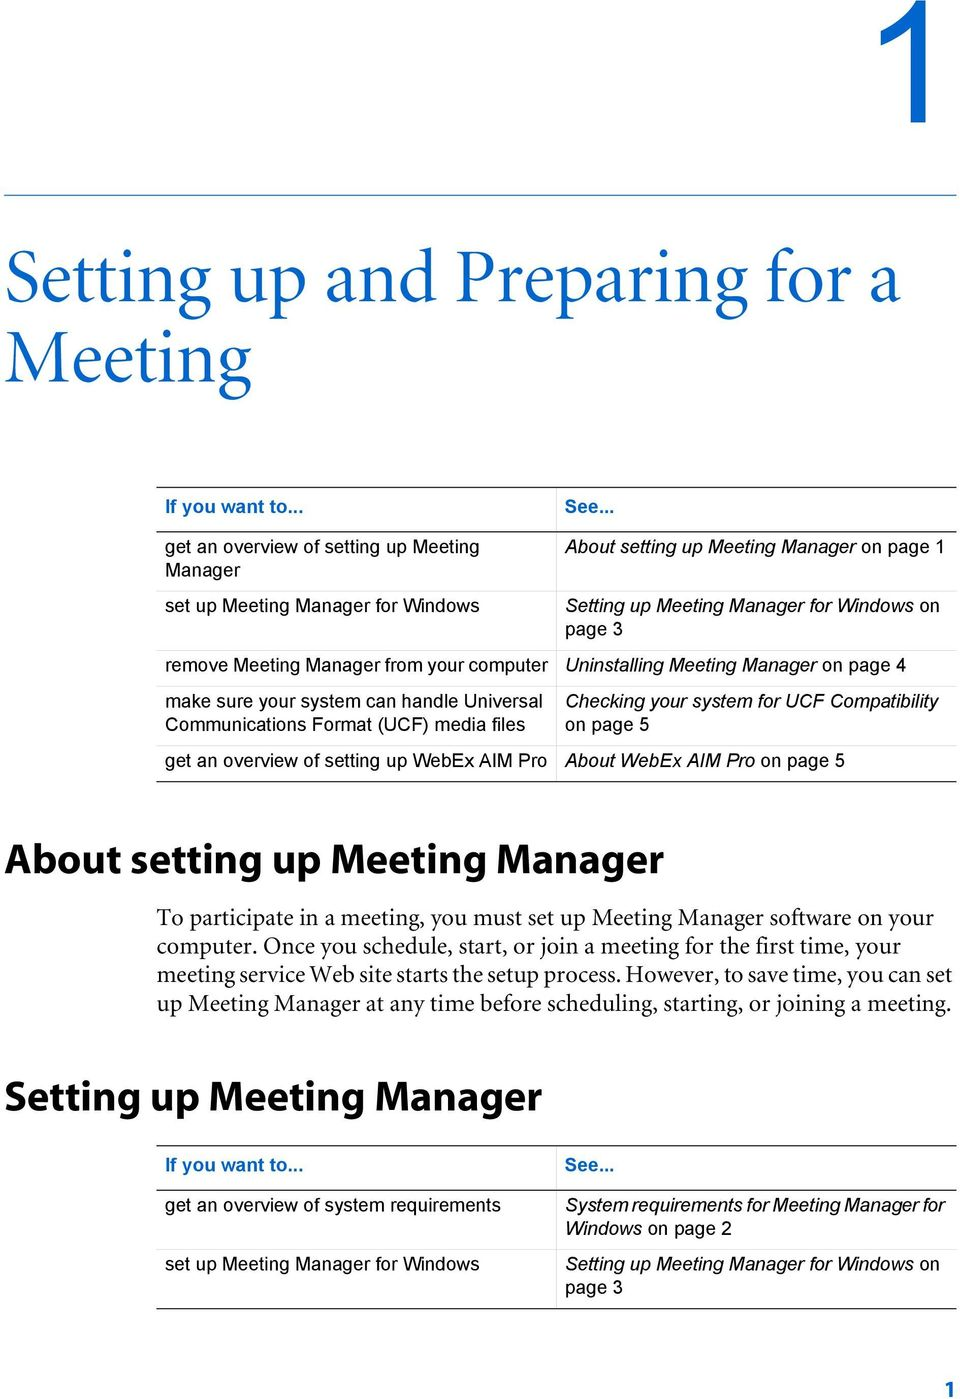 Manager on page 4 make sure your system can handle Universal Communications Format (UCF) media files Checking your system for UCF Compatibility on page 5 get an overview of setting up WebEx AIM Pro